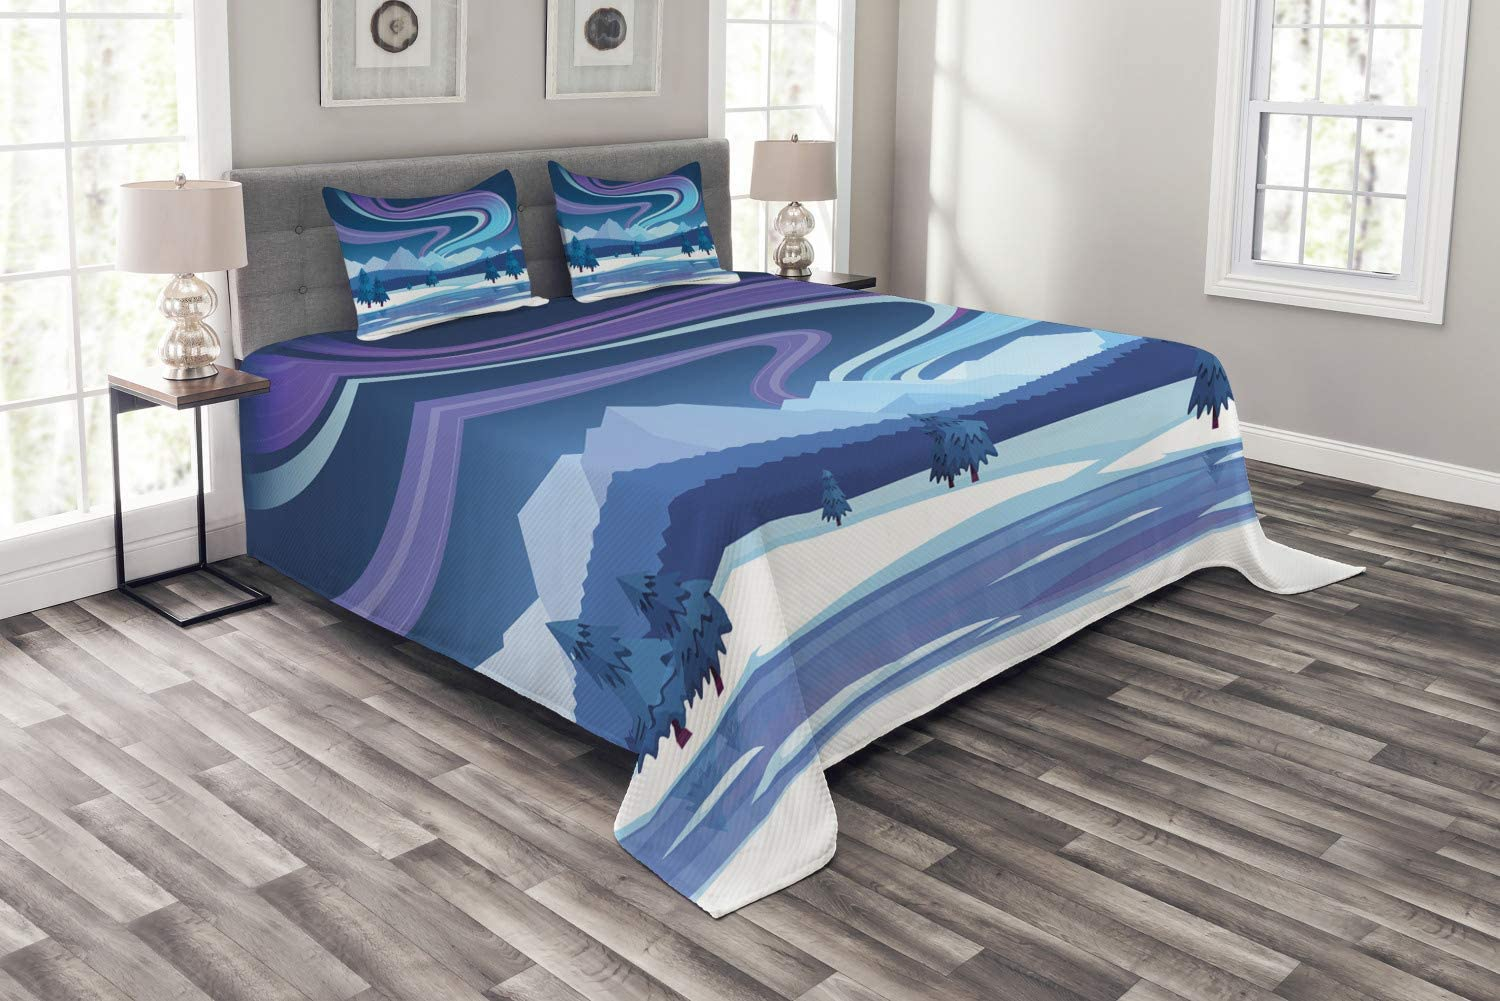 Ambesonne Northwoods Bedspread, Aurora Borealis Composition Countryside Elements Frozen Lake Hills and Trees, Decorative Quilted 3 Piece Coverlet Set with 2 Pillow Shams, Queen Size, Blue Aqua